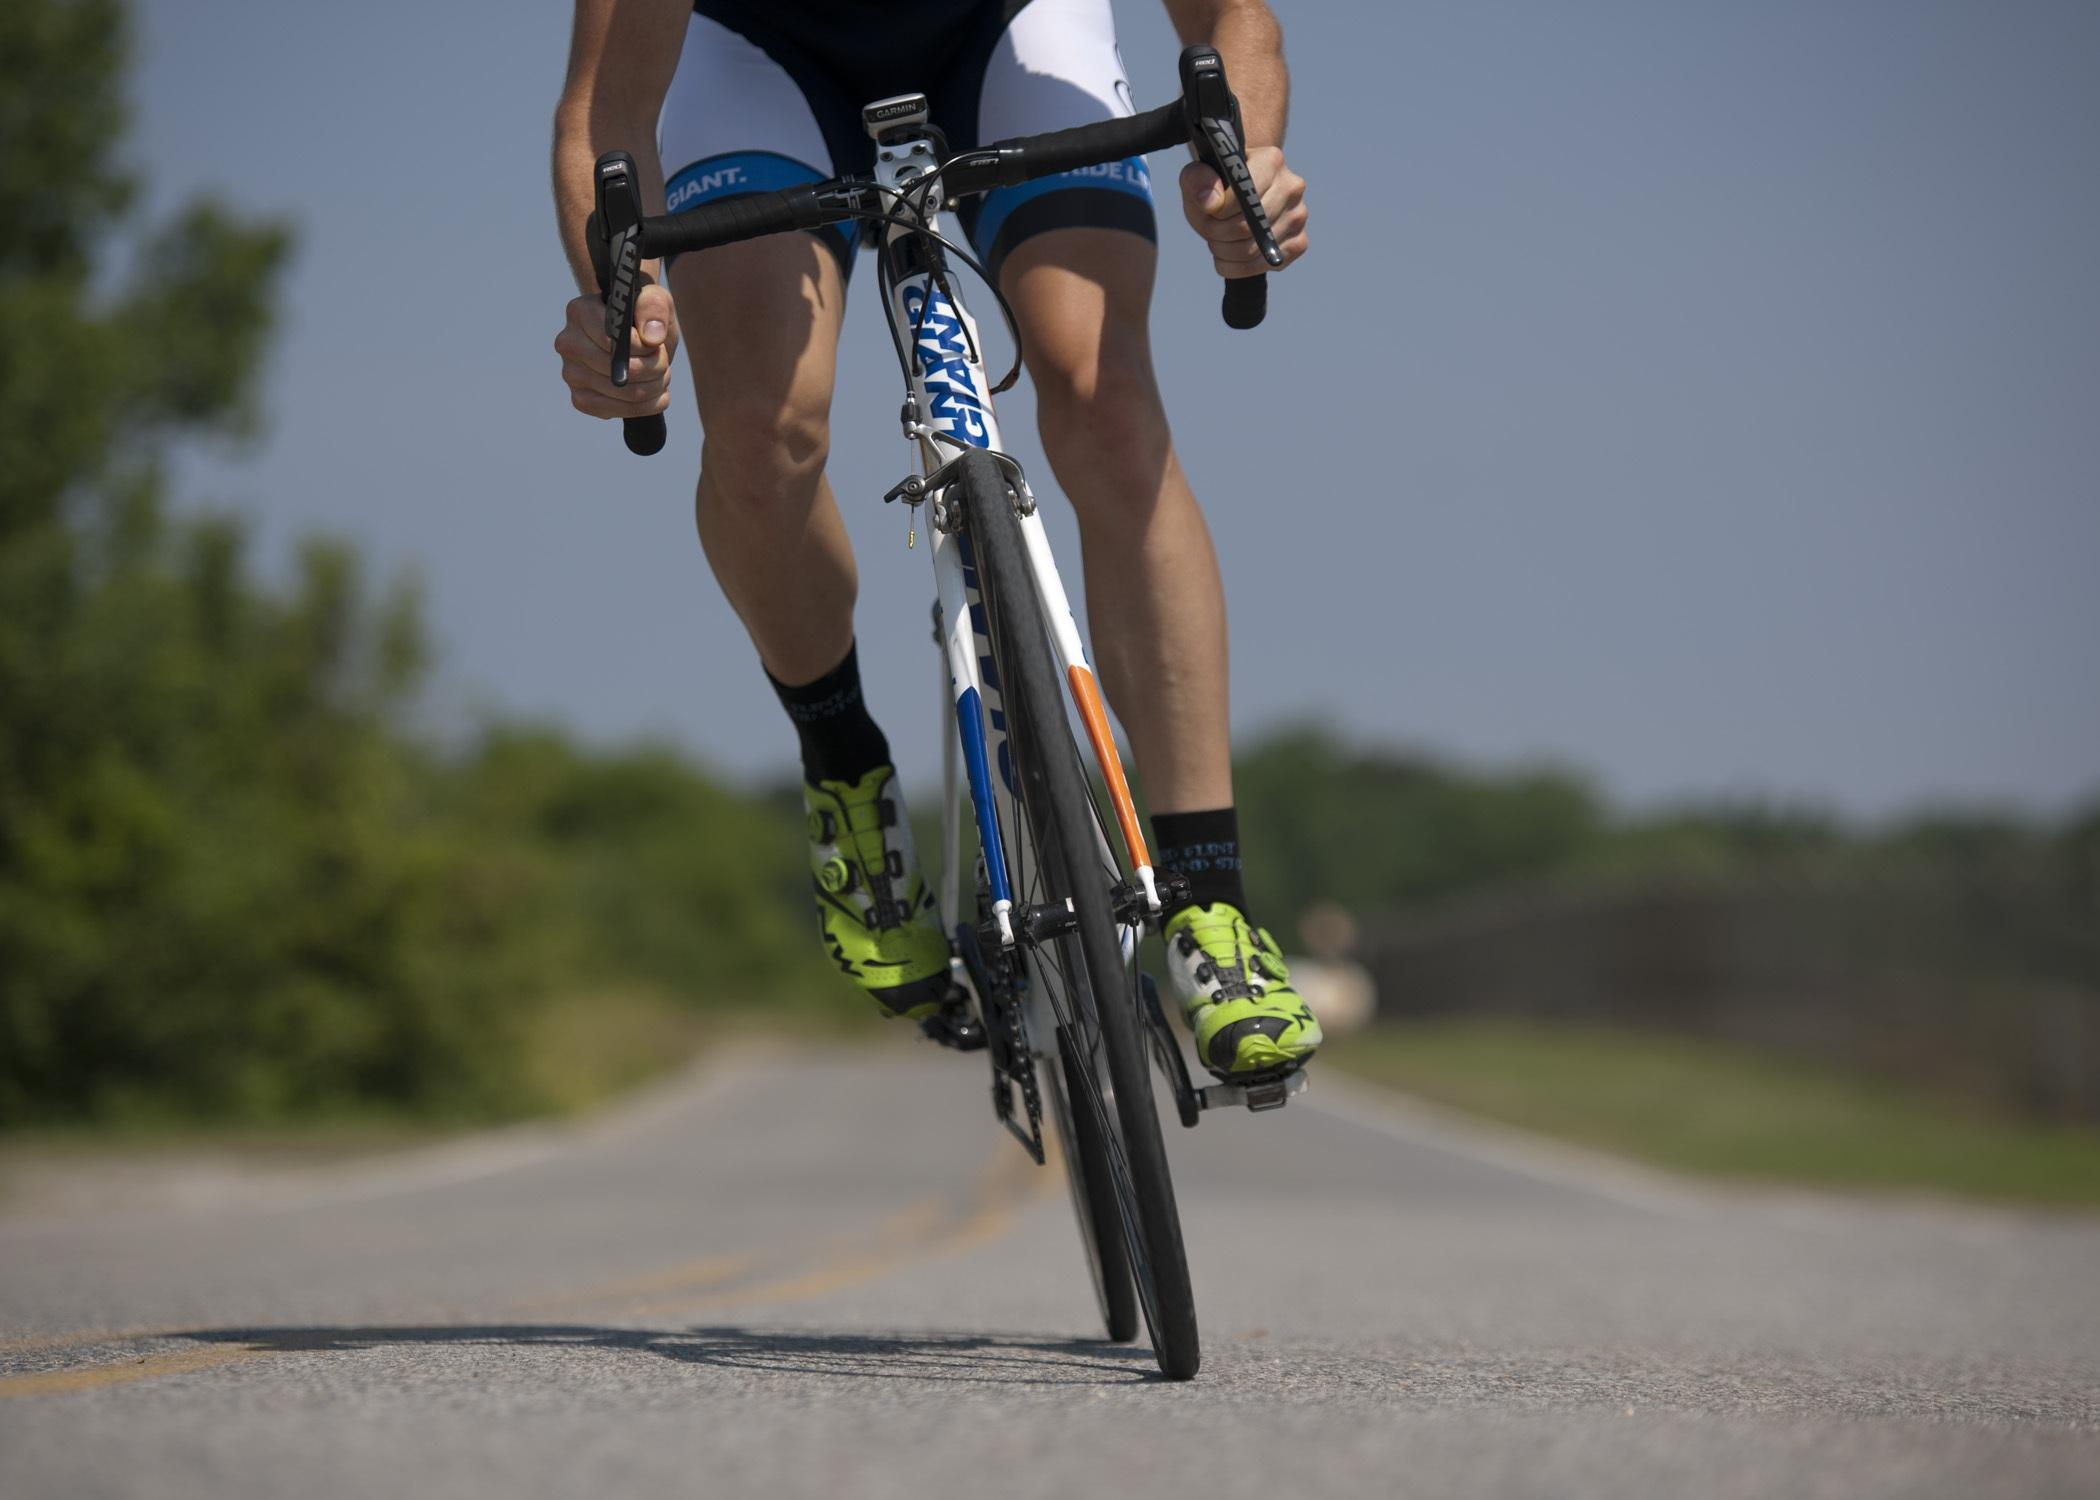 Bicycle Accident Compensation Claims